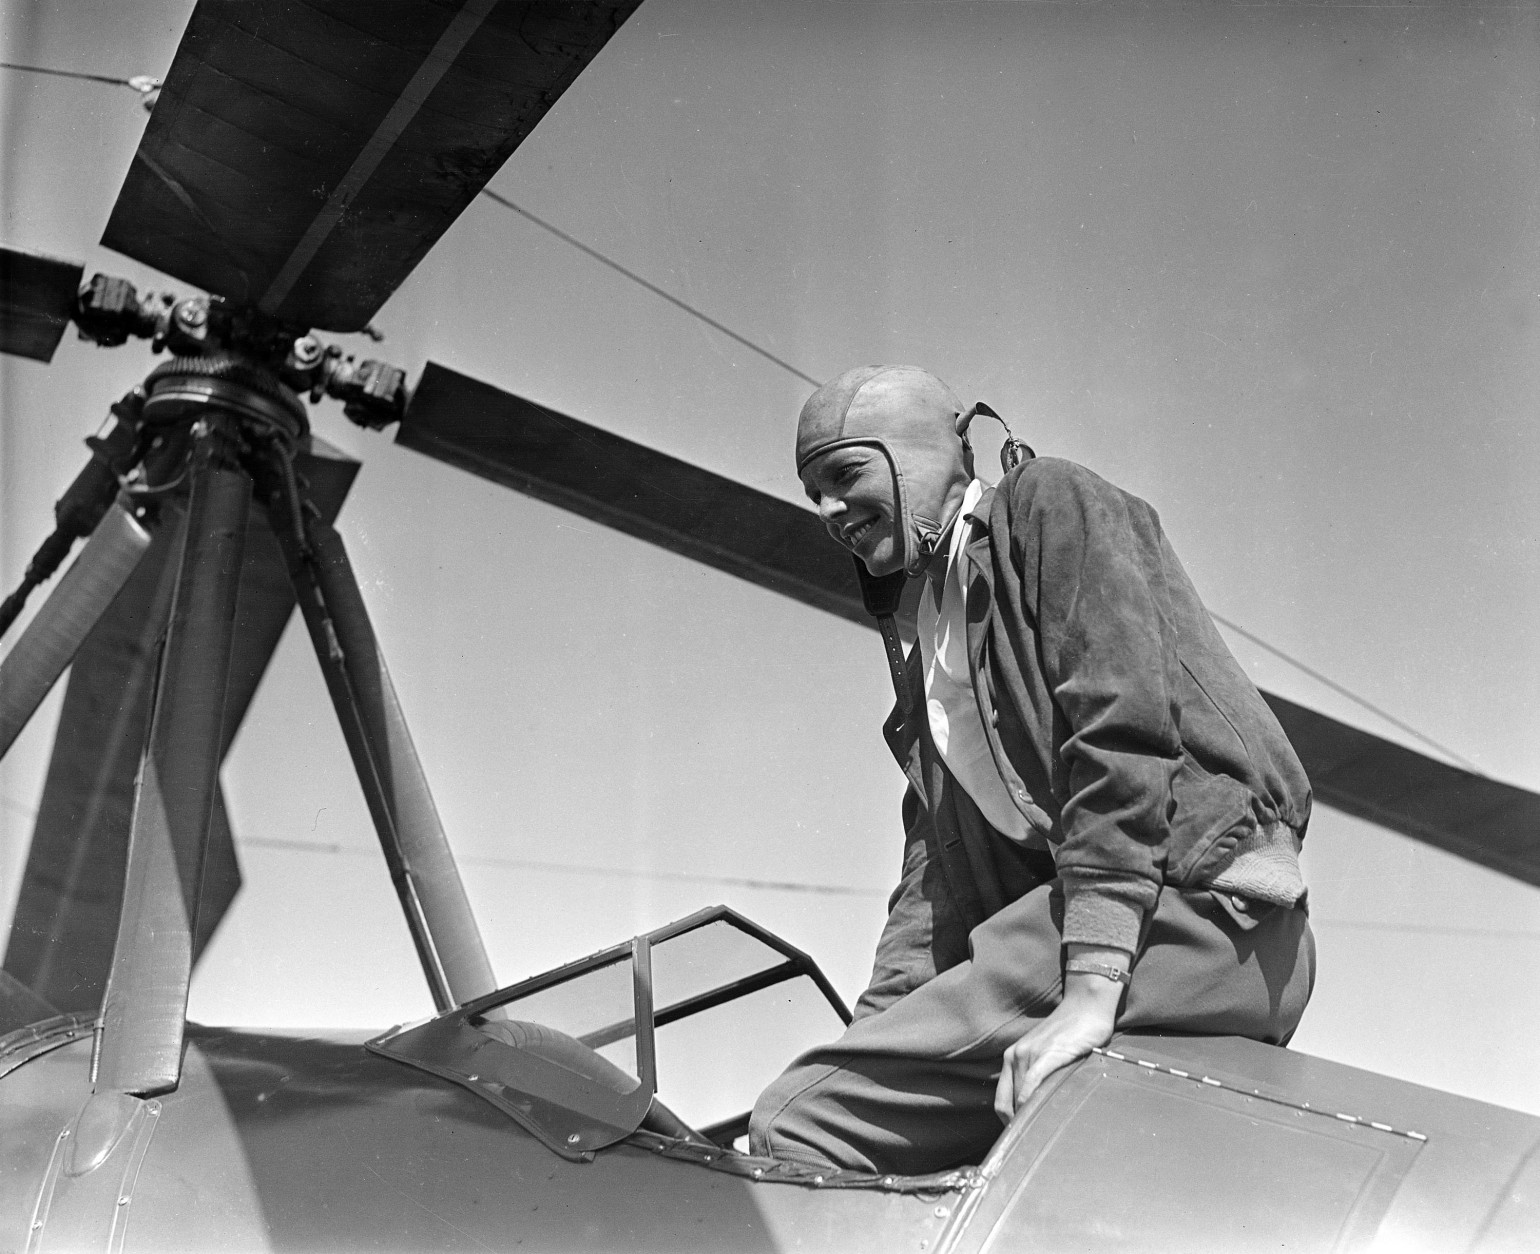 On this date in 1932, Amelia Earhart embarked on a 19-hour flight from Los Angeles to Newark, New Jersey, making her the first woman to fly solo, non-stop, from coast to coast. Here, Earhart is seen after a transcontinental flight in Oakland, Calif., on June 6, 1931.  (AP Photo)